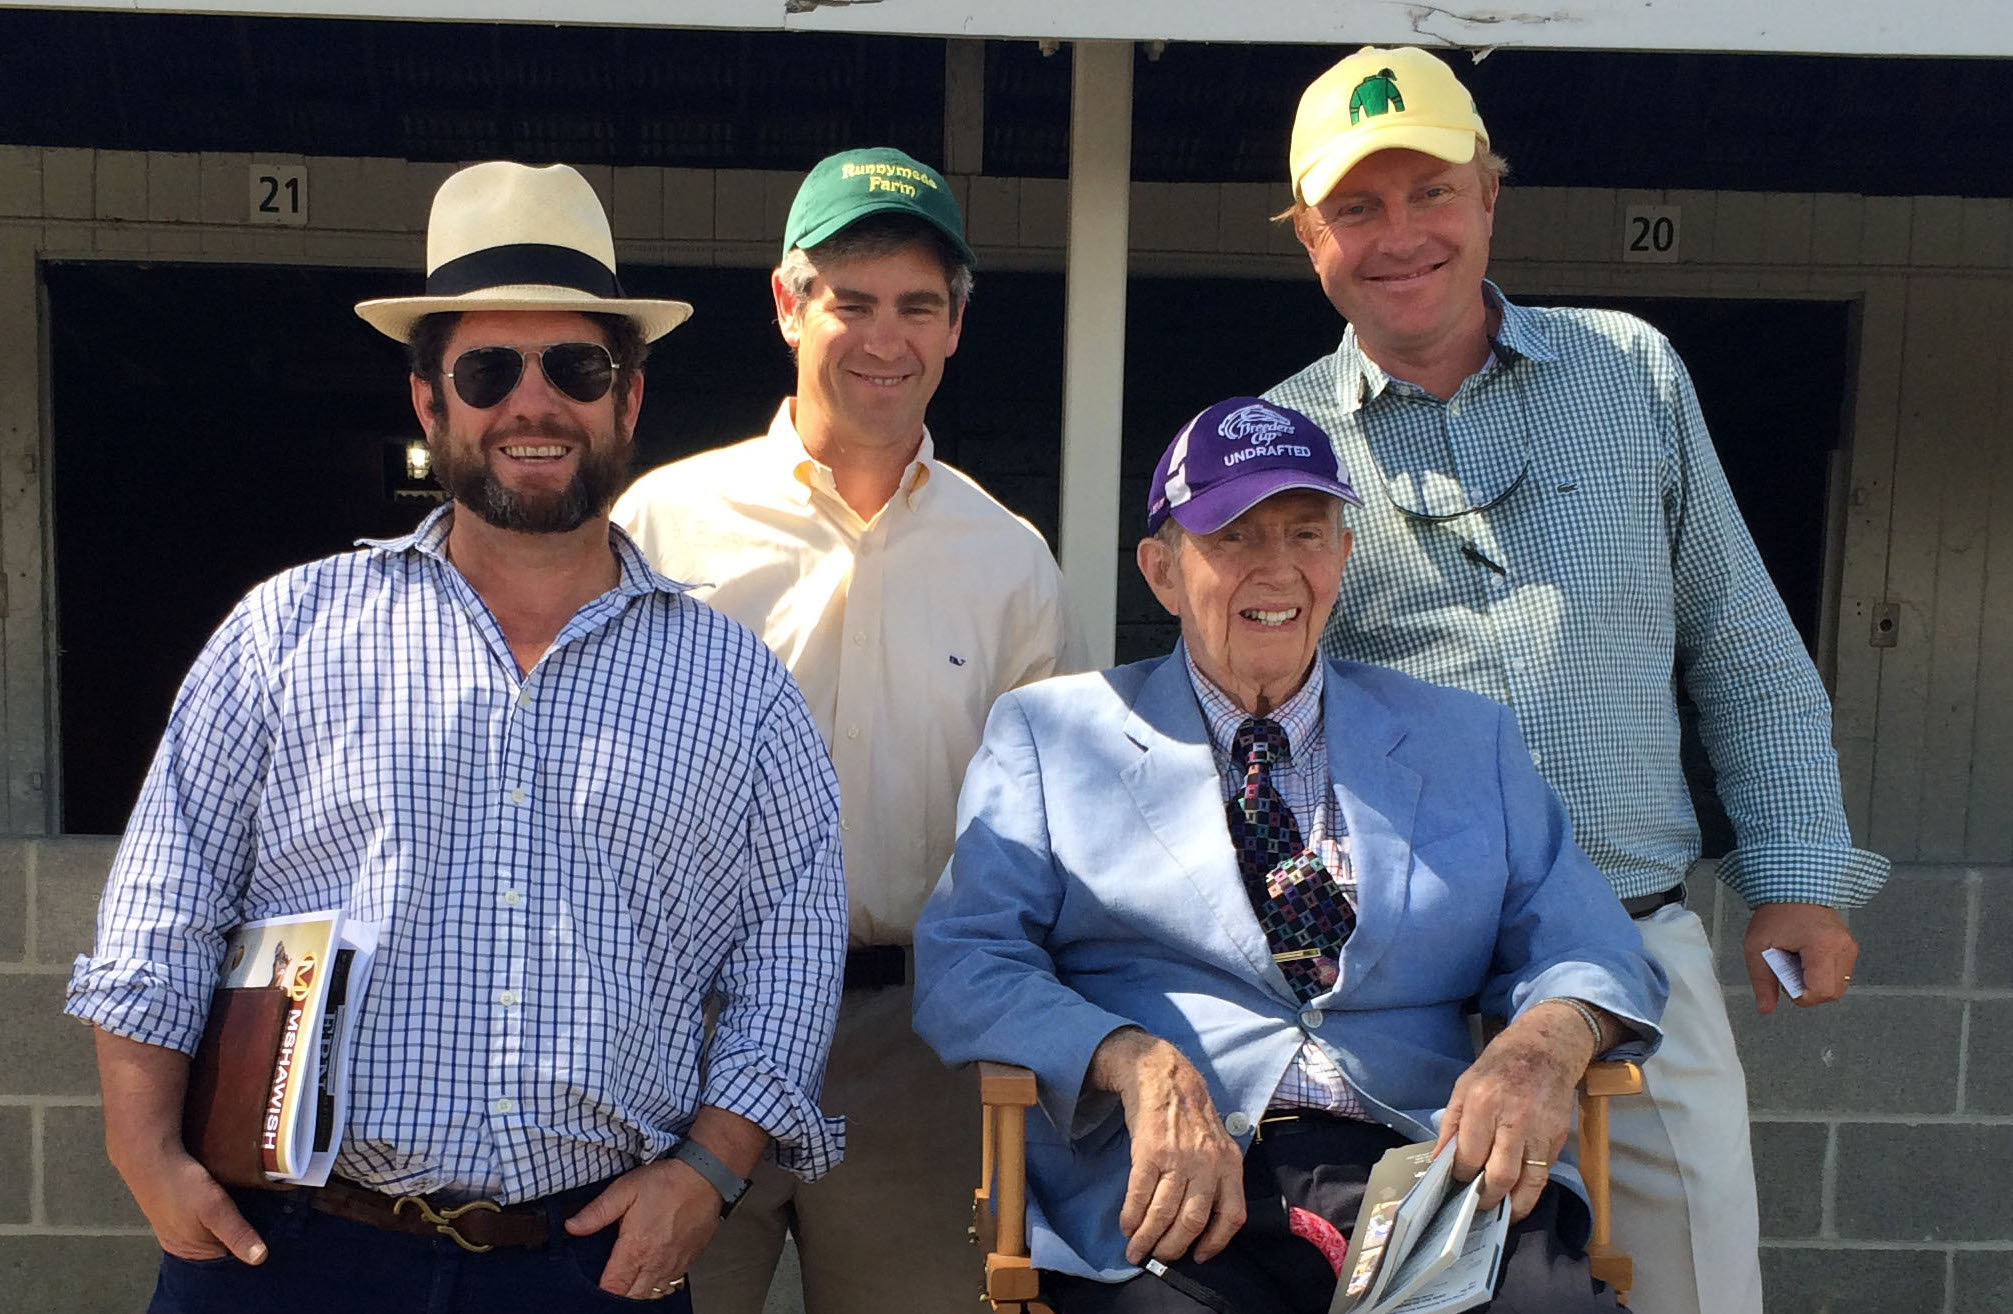 The men behind Runnymede Farm: from left, Joe Clay (a brother of Brutus Clay), Chief Executive Brutus Clay, Catesby W. Clay and General Manager Romain Malhouitre during the recent Keeneland September yearling sale. Photo: Clay family